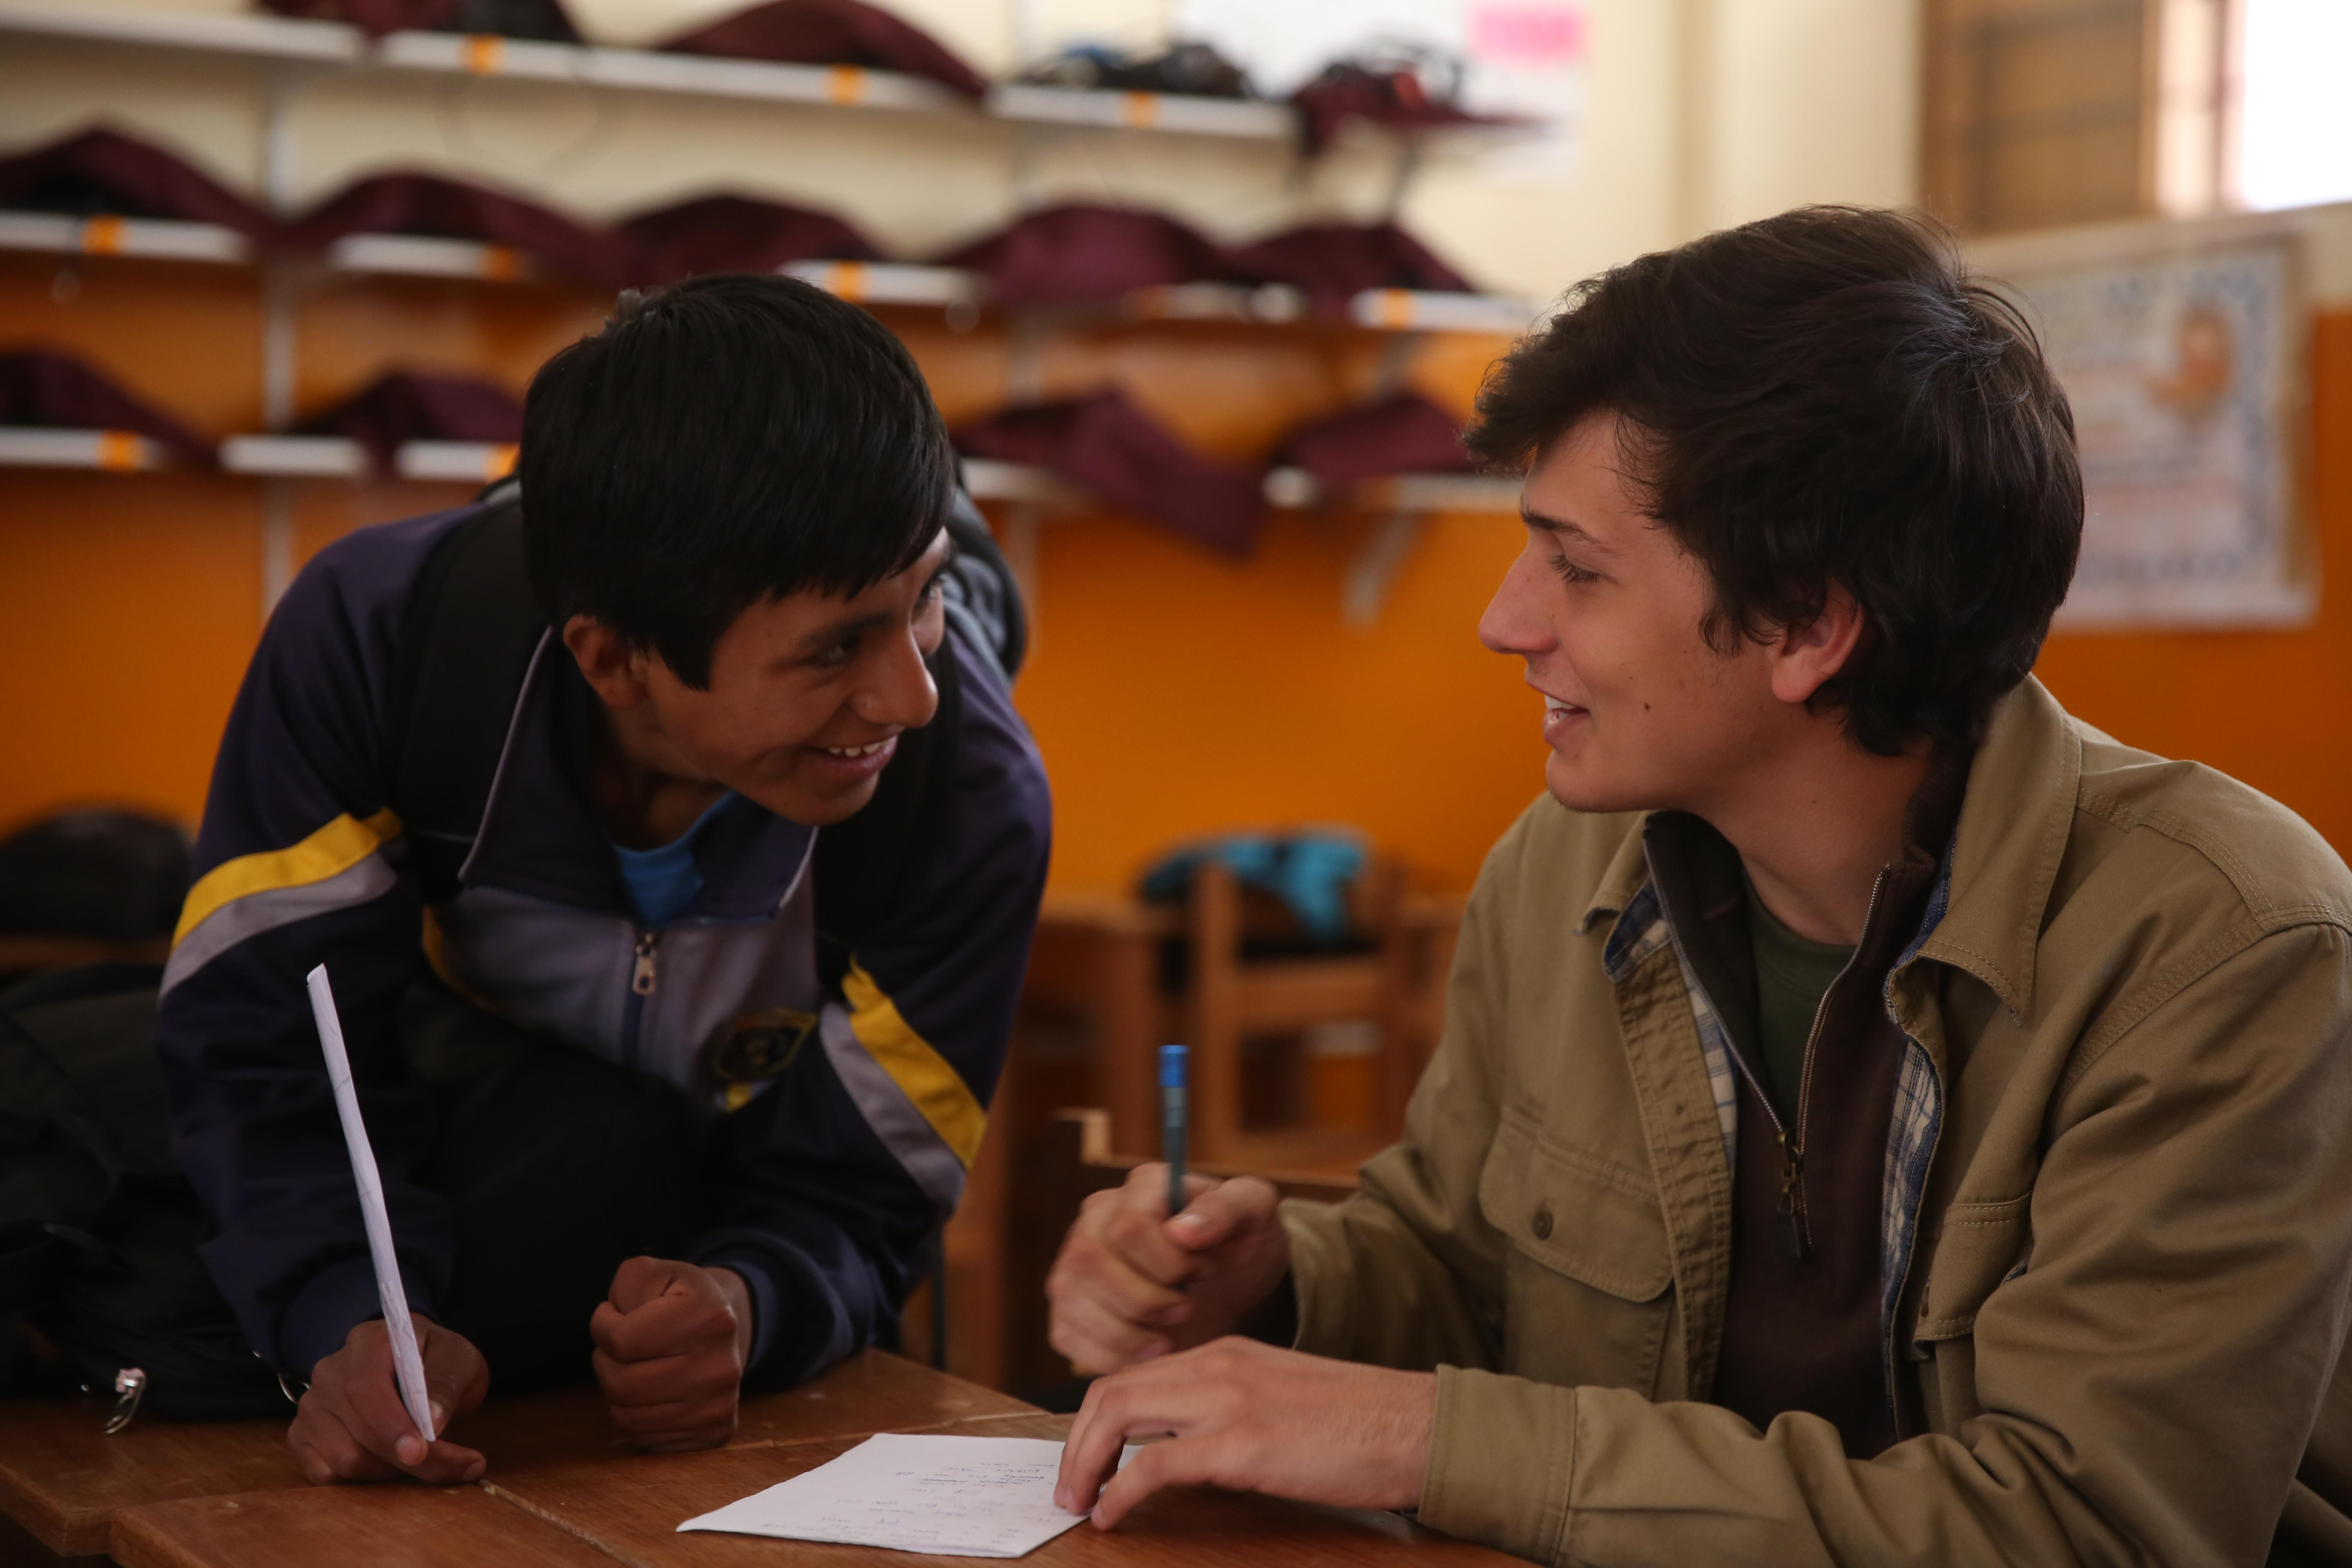 Projects Abroad volunteer has a conversation with one of his students during his teaching work experience in Peru